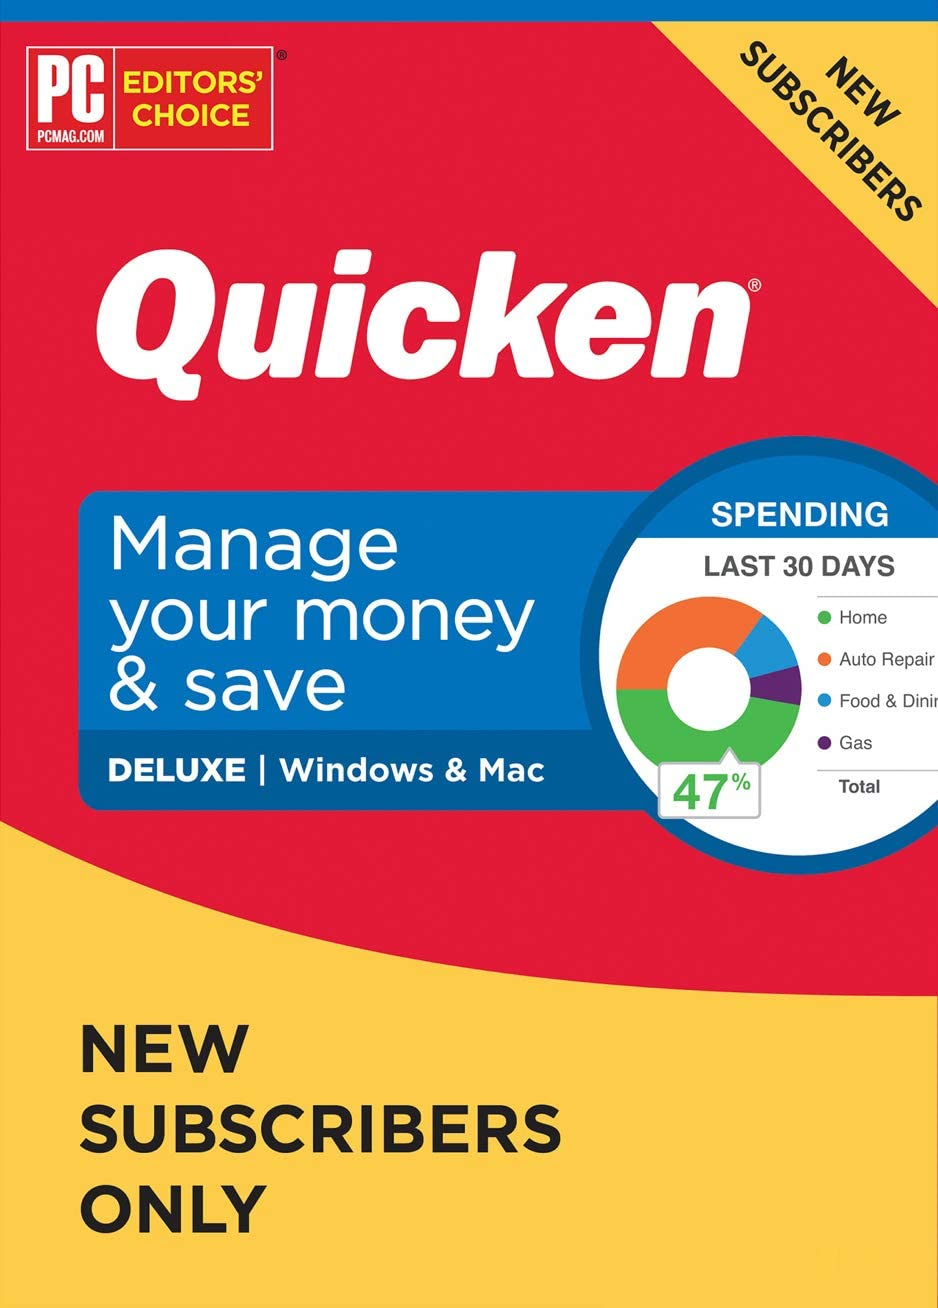 Quicken Deluxe NEW Subscriber Personal Finance – Manage your money with your First Year Subscription to Quicken (Windows/Mac)